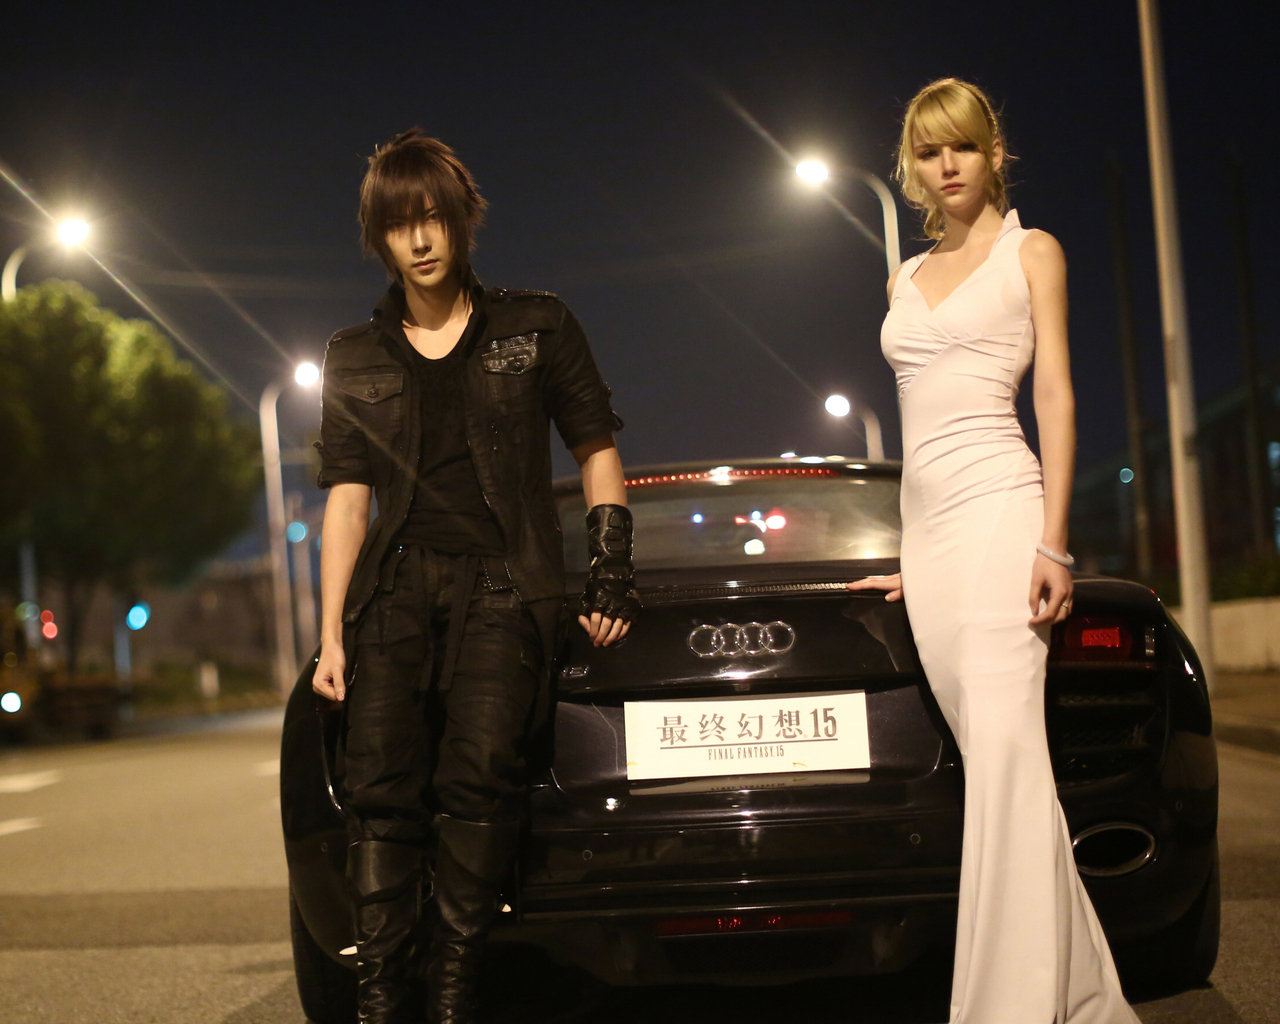 final-fantasy-xv-noctis-and-luna-cosplay-image.jpg